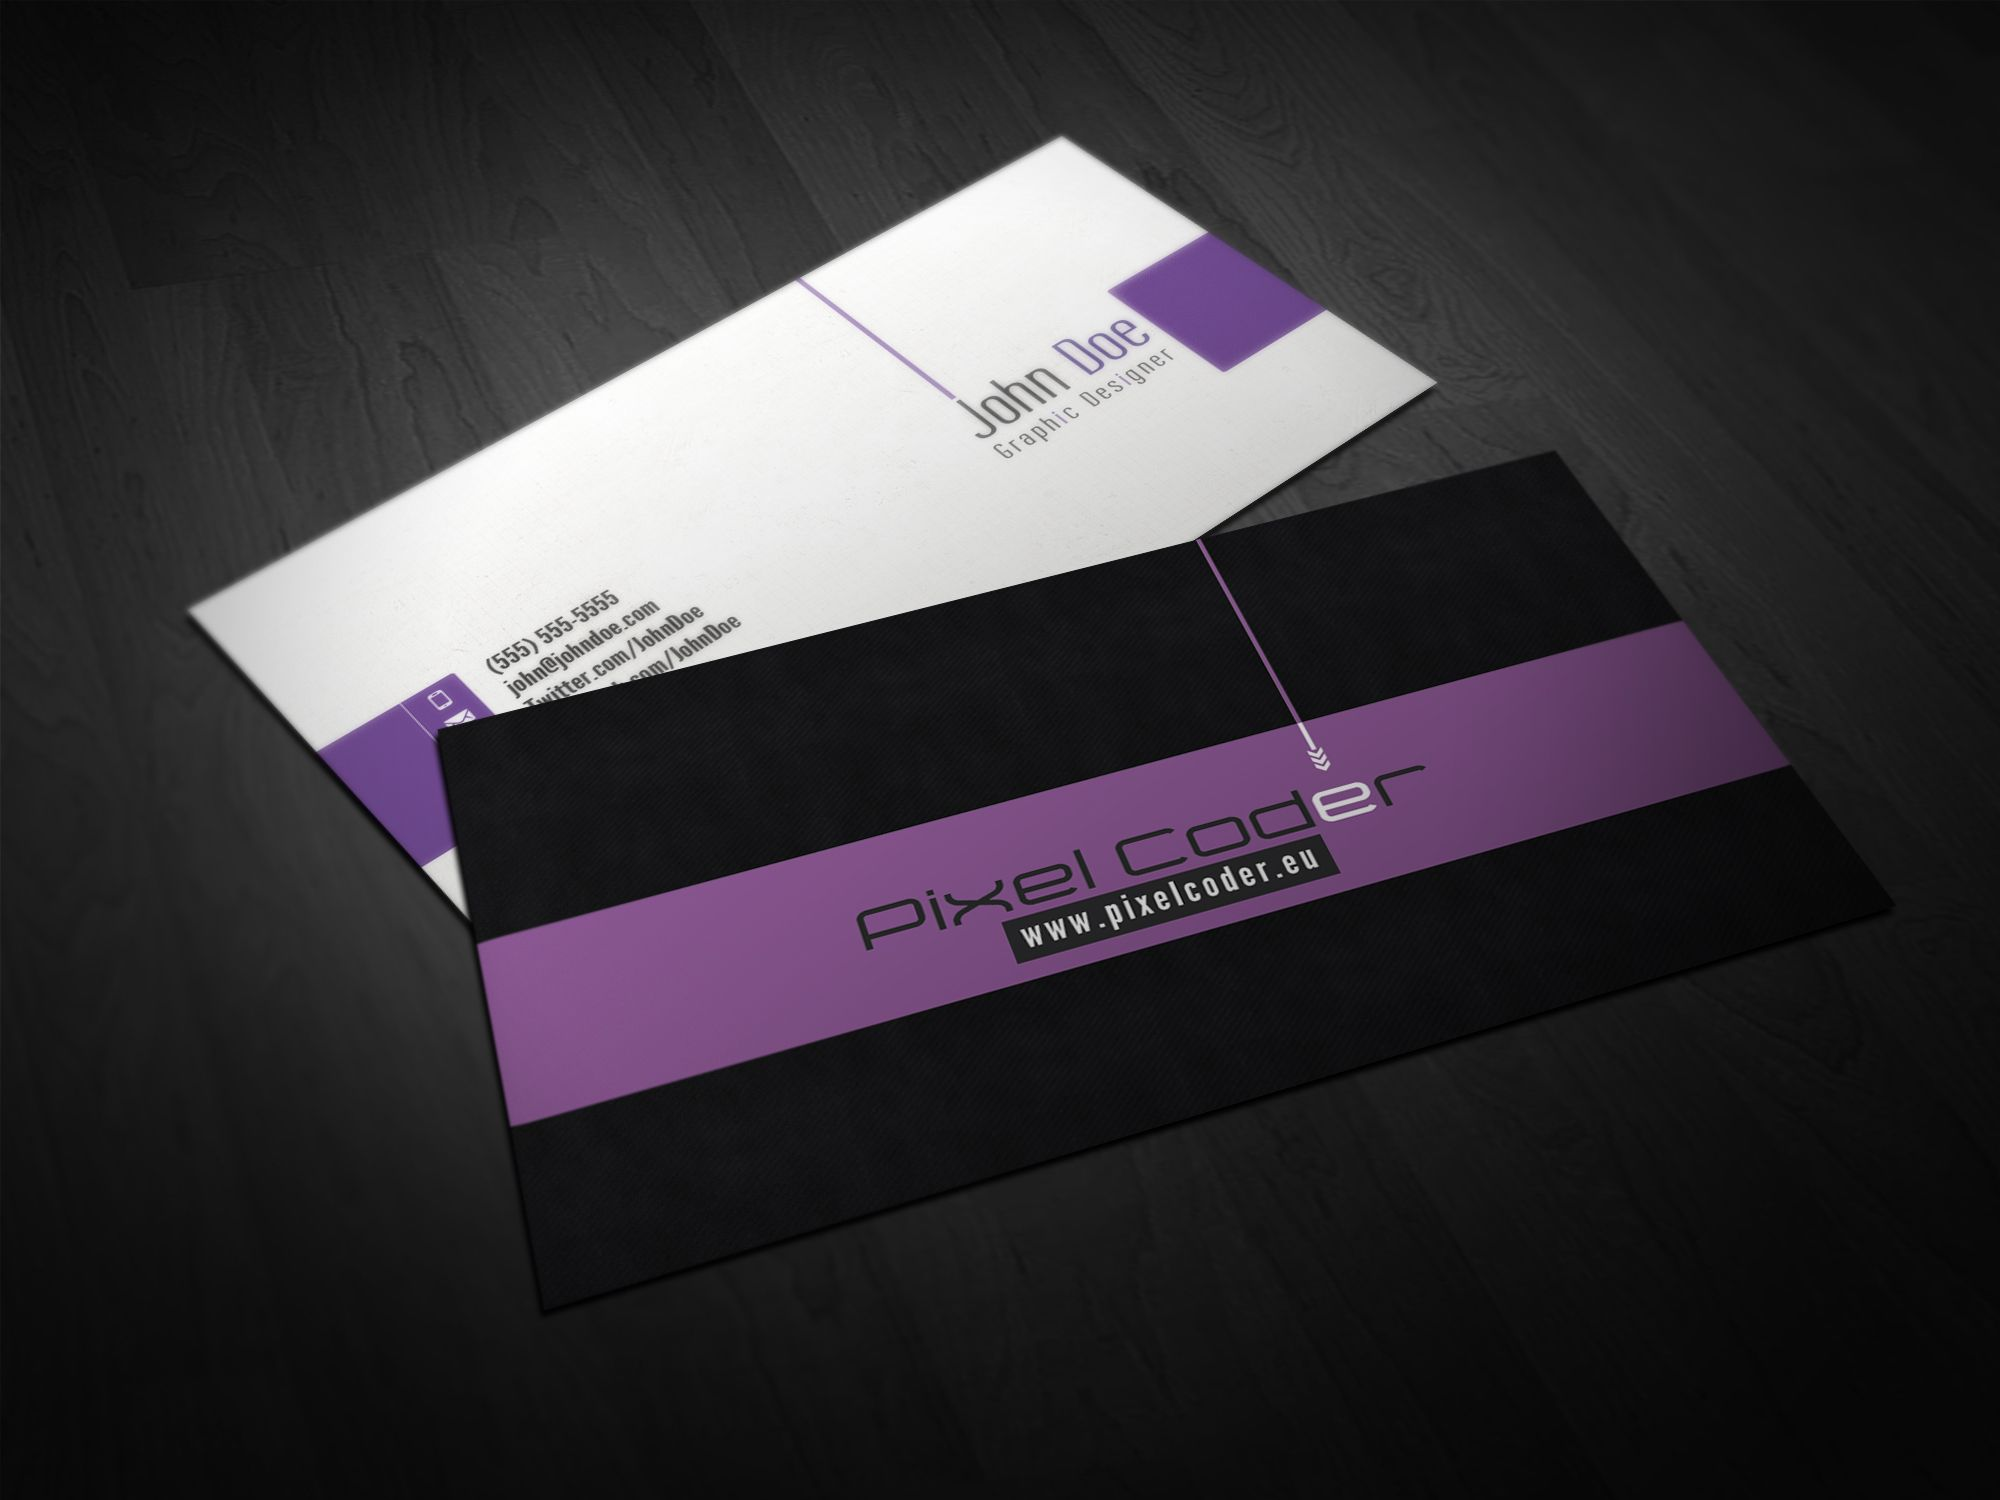 Photoshop Business Card Templatebest Business Templates Best